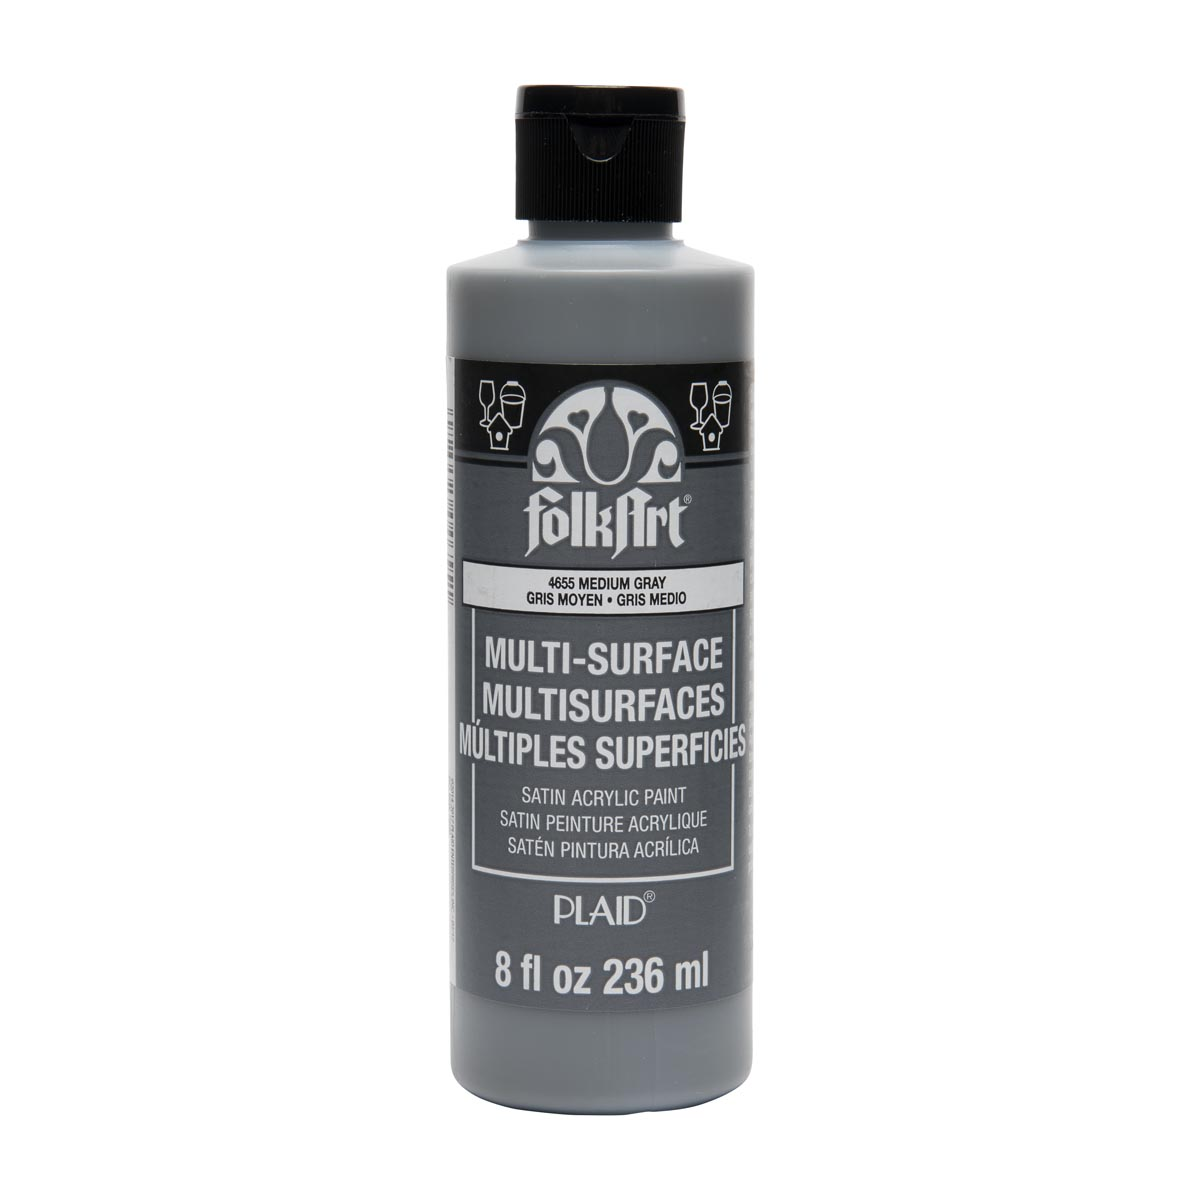 FolkArt ® Multi-Surface Satin Acrylic Paints - Medium Gray, 8 oz.